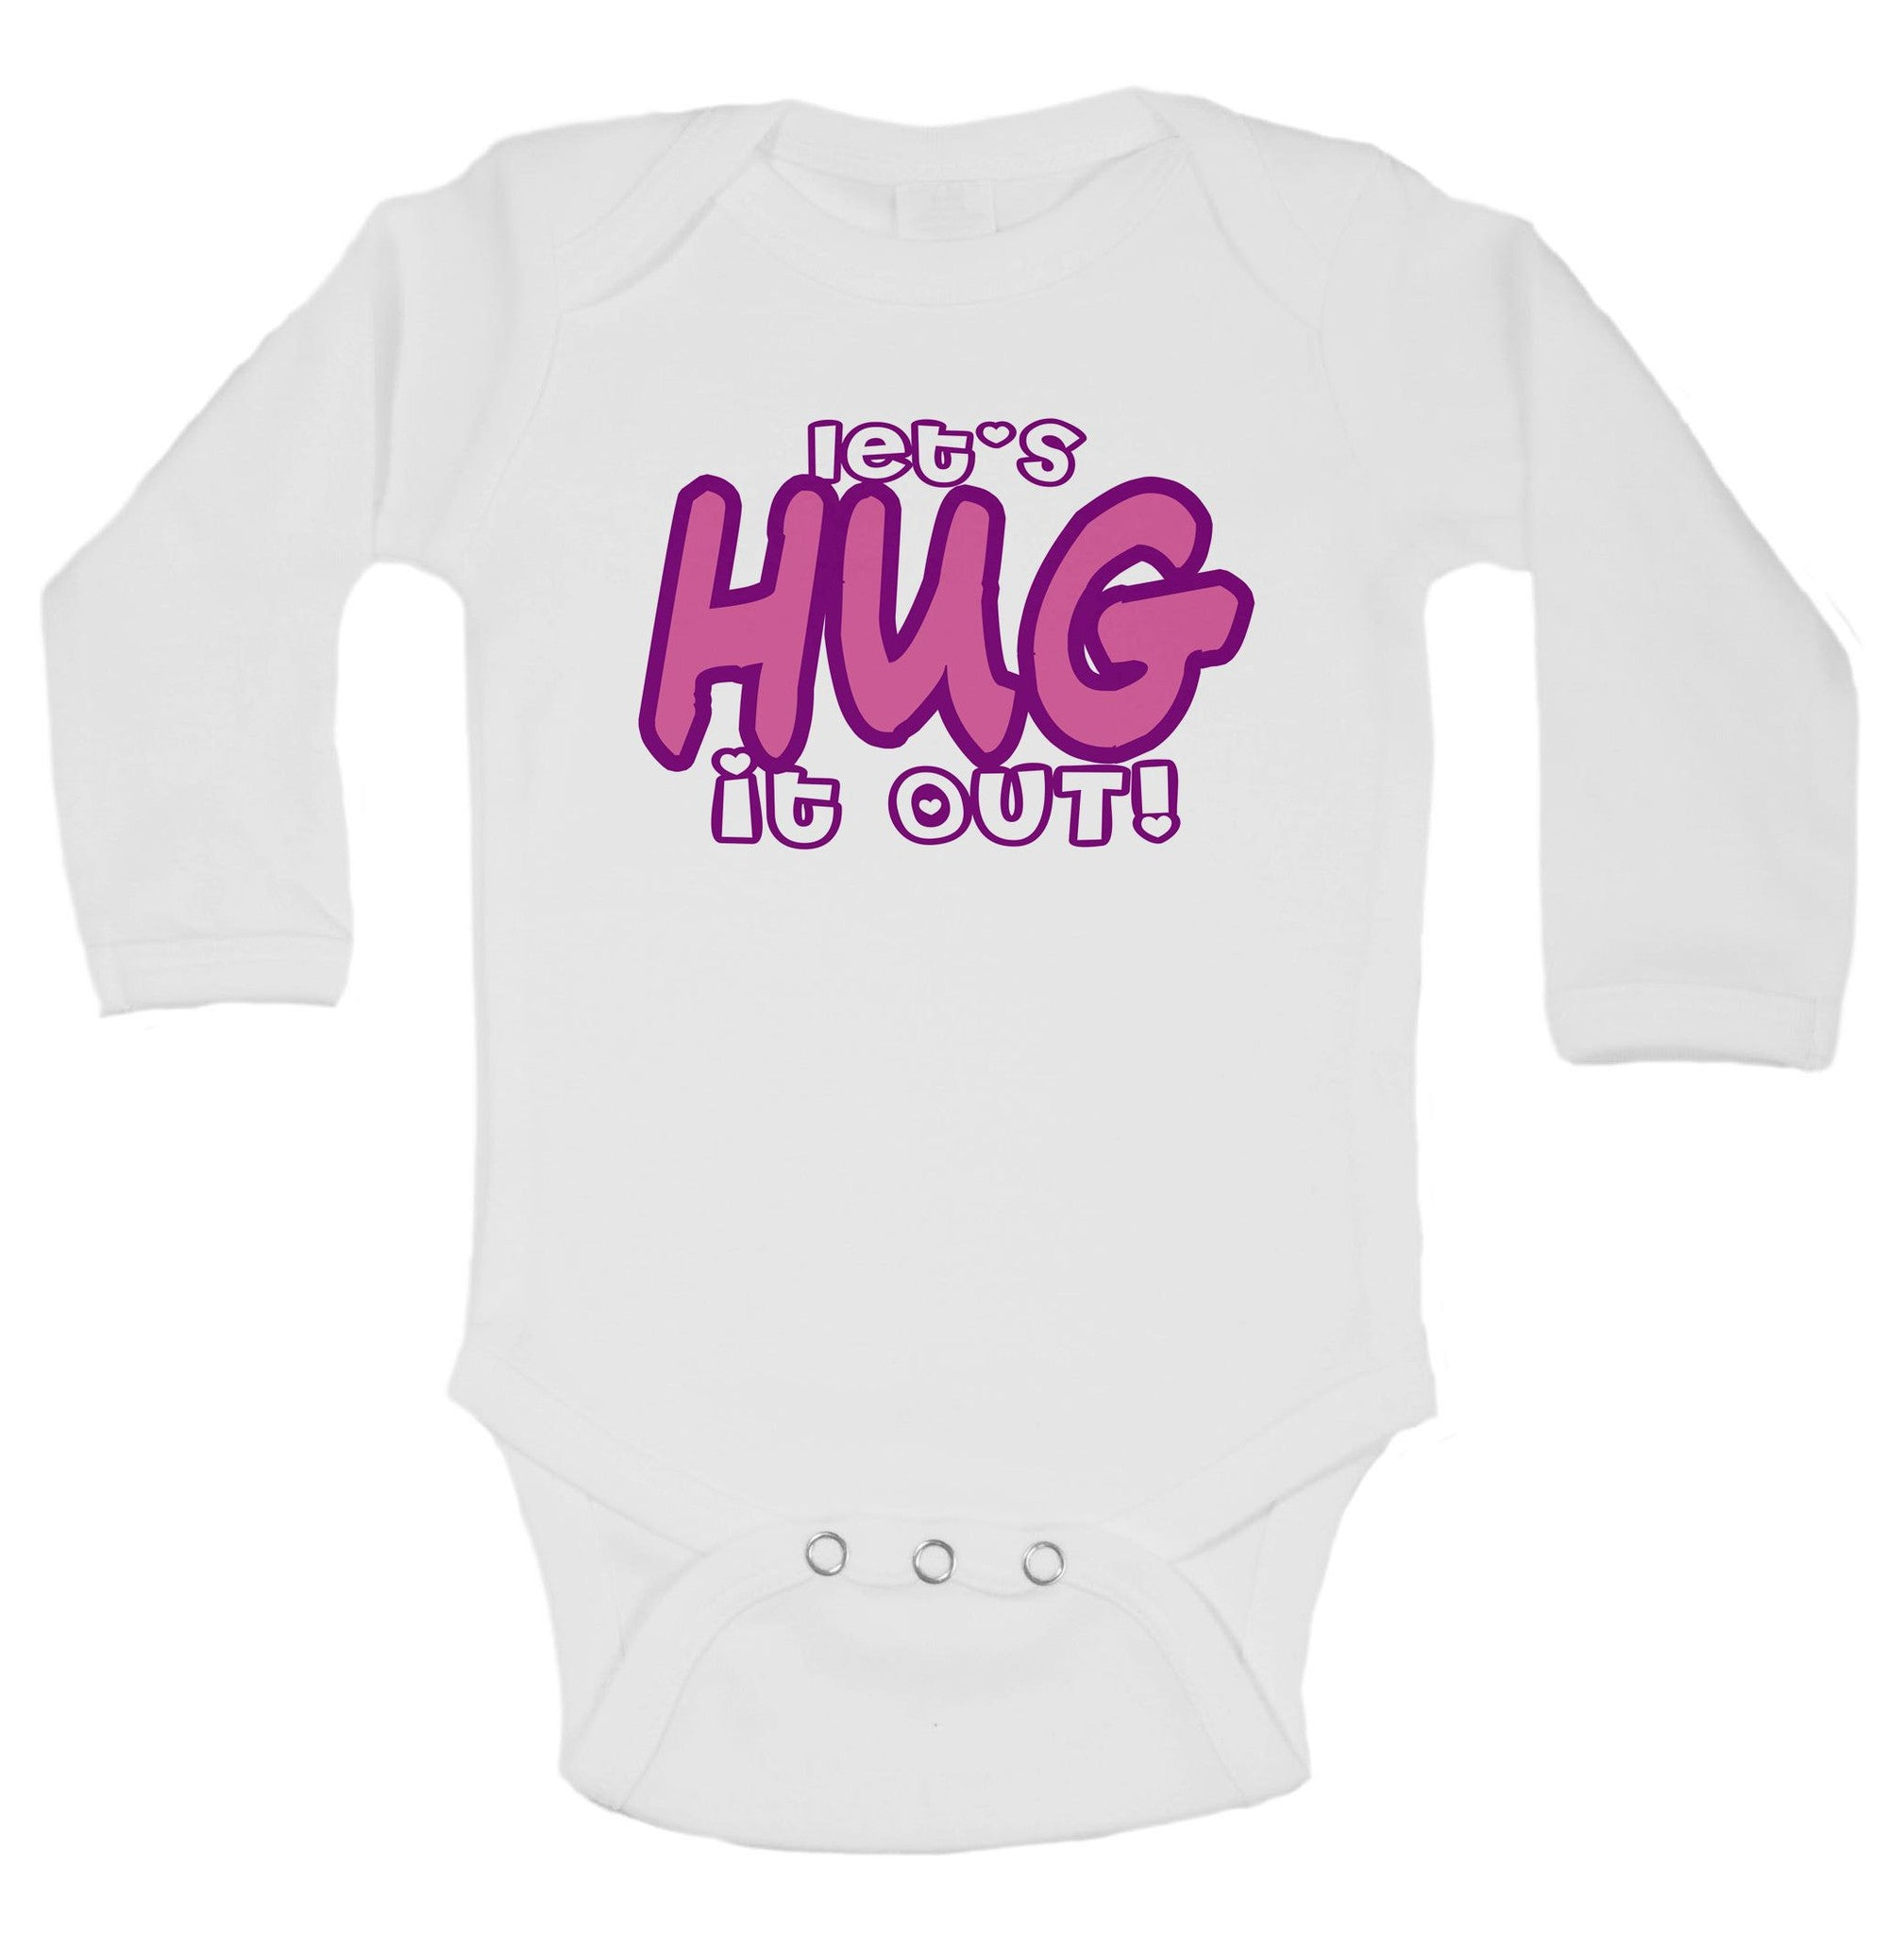 Let's Hug It Out! Funny Kids Onesie - B57 - Funny Shirts Tank Tops Burnouts and Triblends  - 1